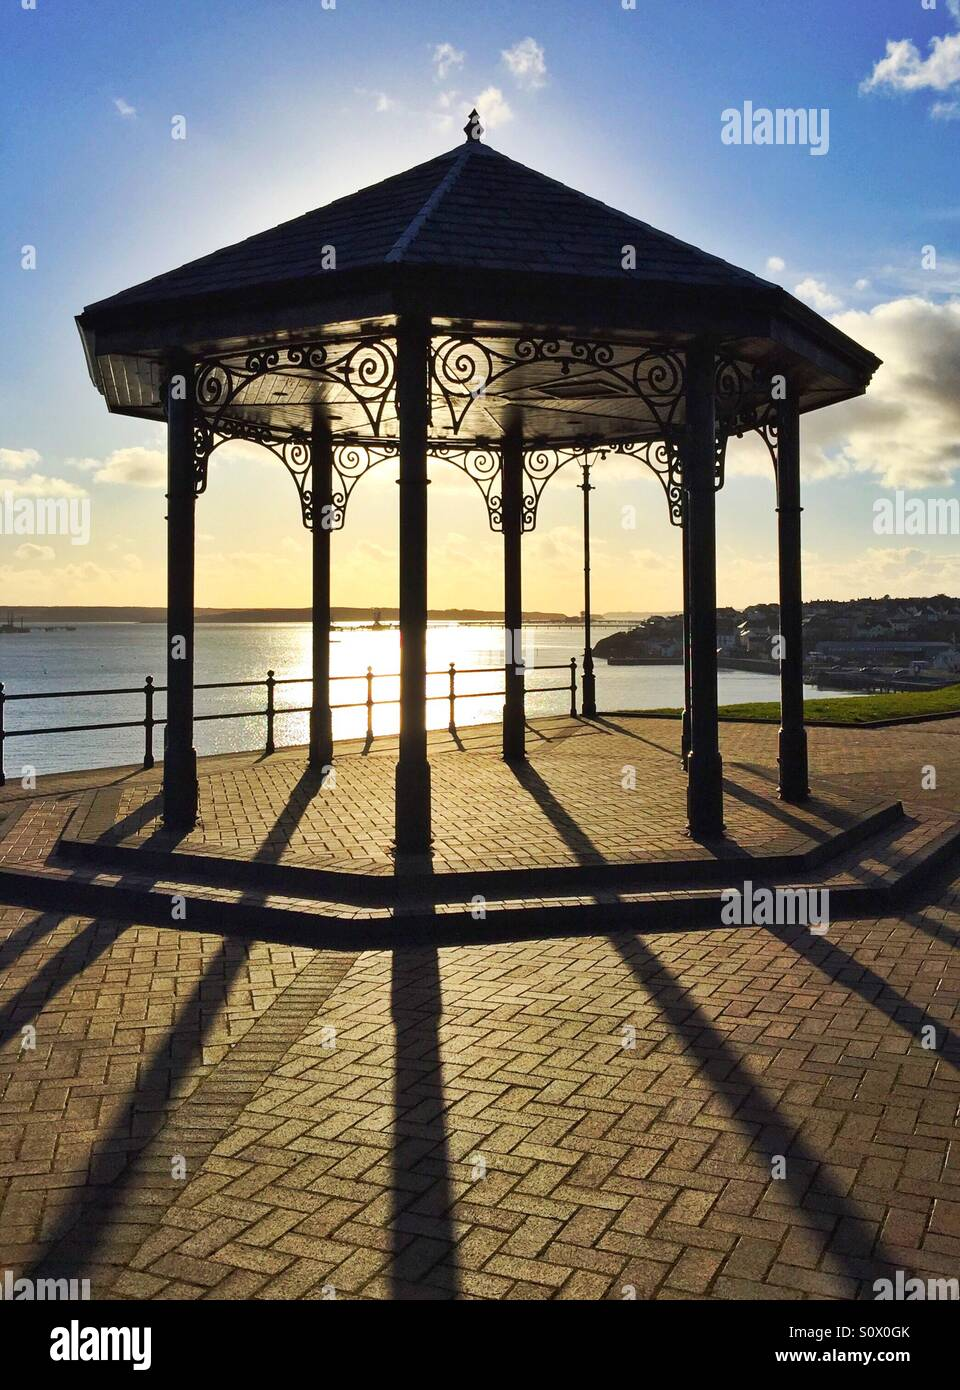 Bandstand at golden hour - Stock Image